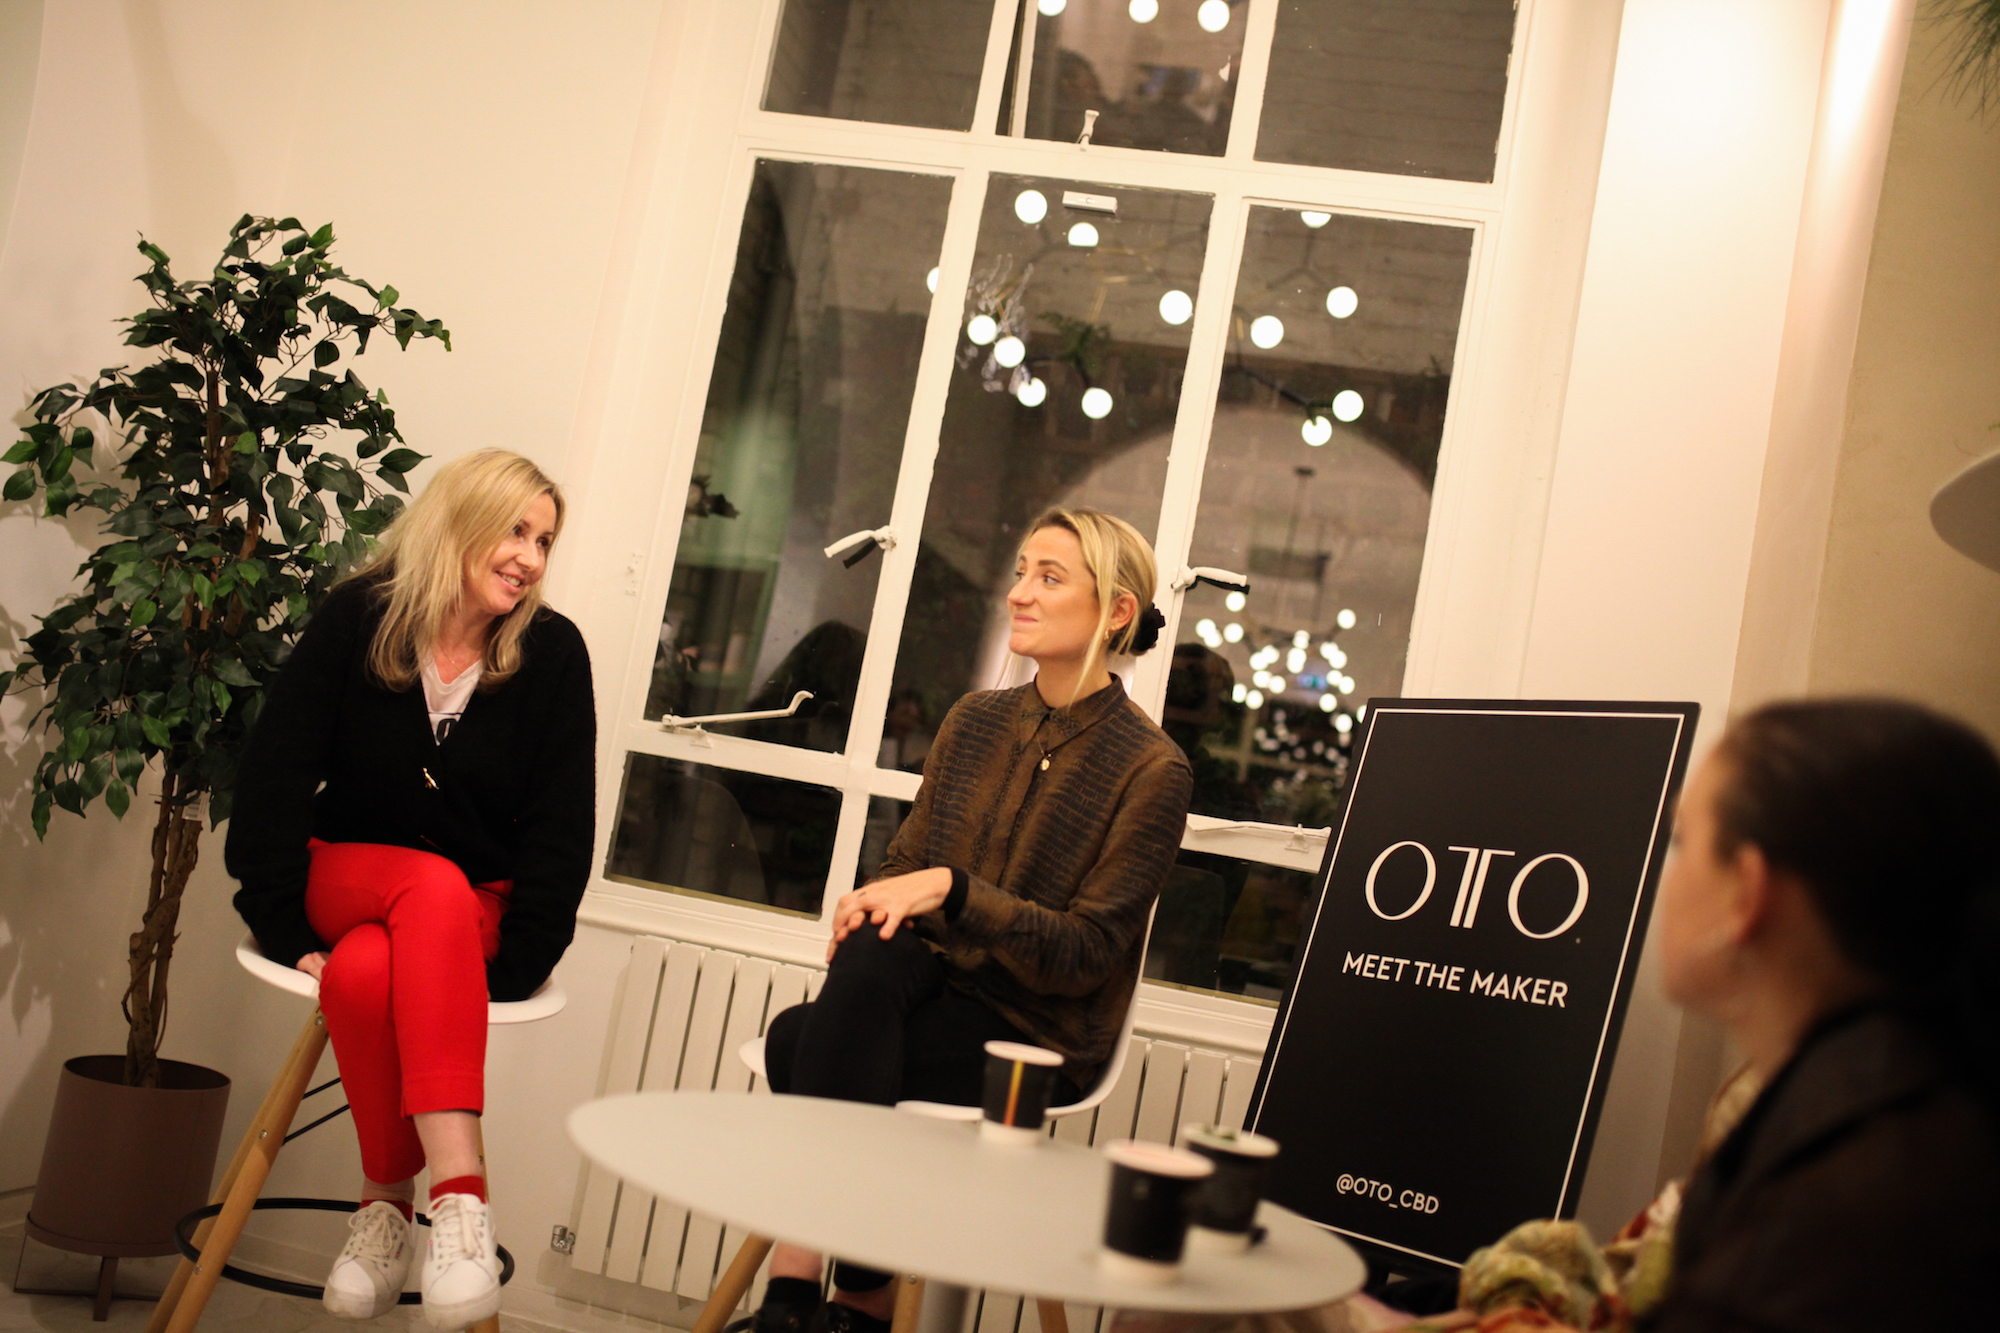 OTO CBD wellness event talk